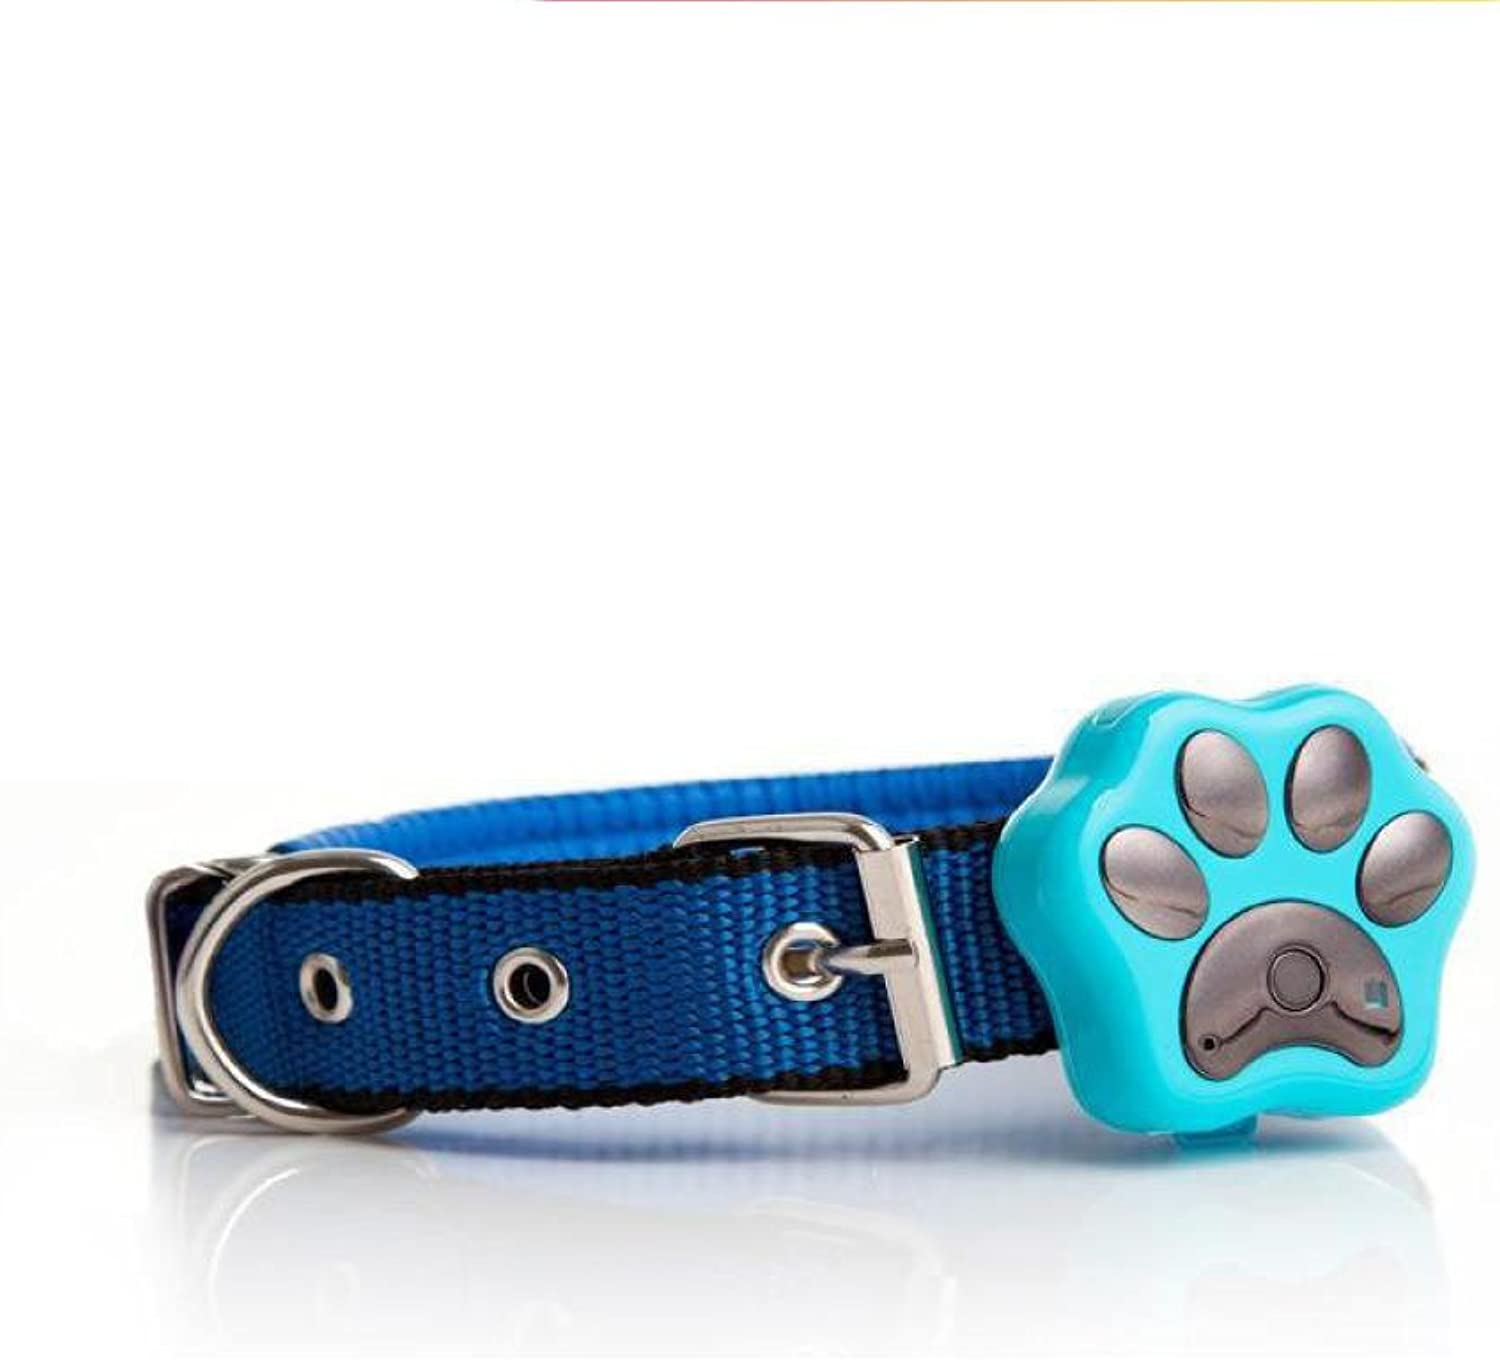 Pet GPS Trackers Waterproof 3G Positioning Locator AntiLost Prevent Wander For Cats Dogs Rabbits Rechargeable,bluee